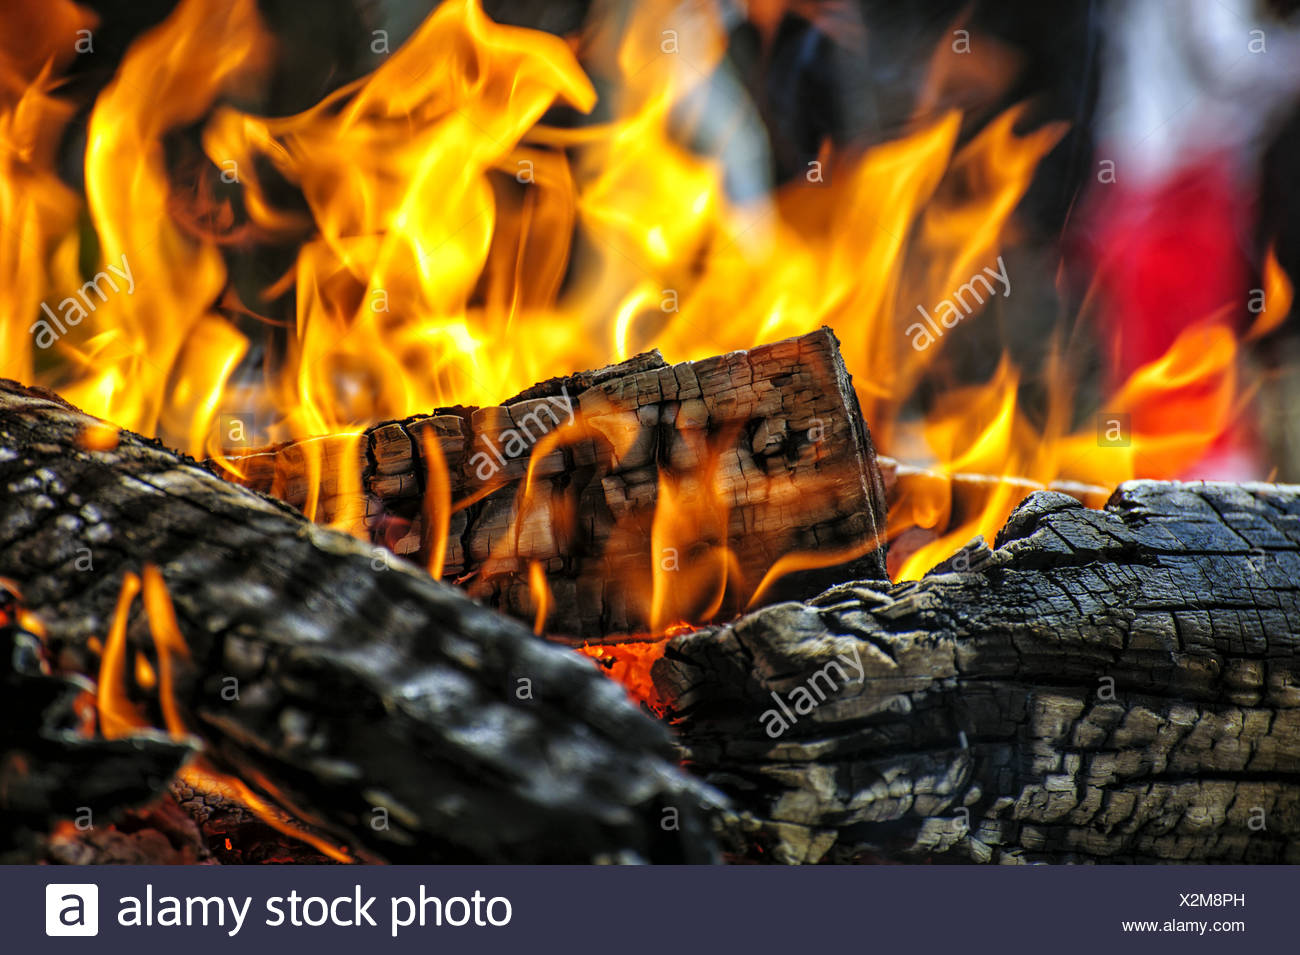 burning charcoal on a grill - Stock Image